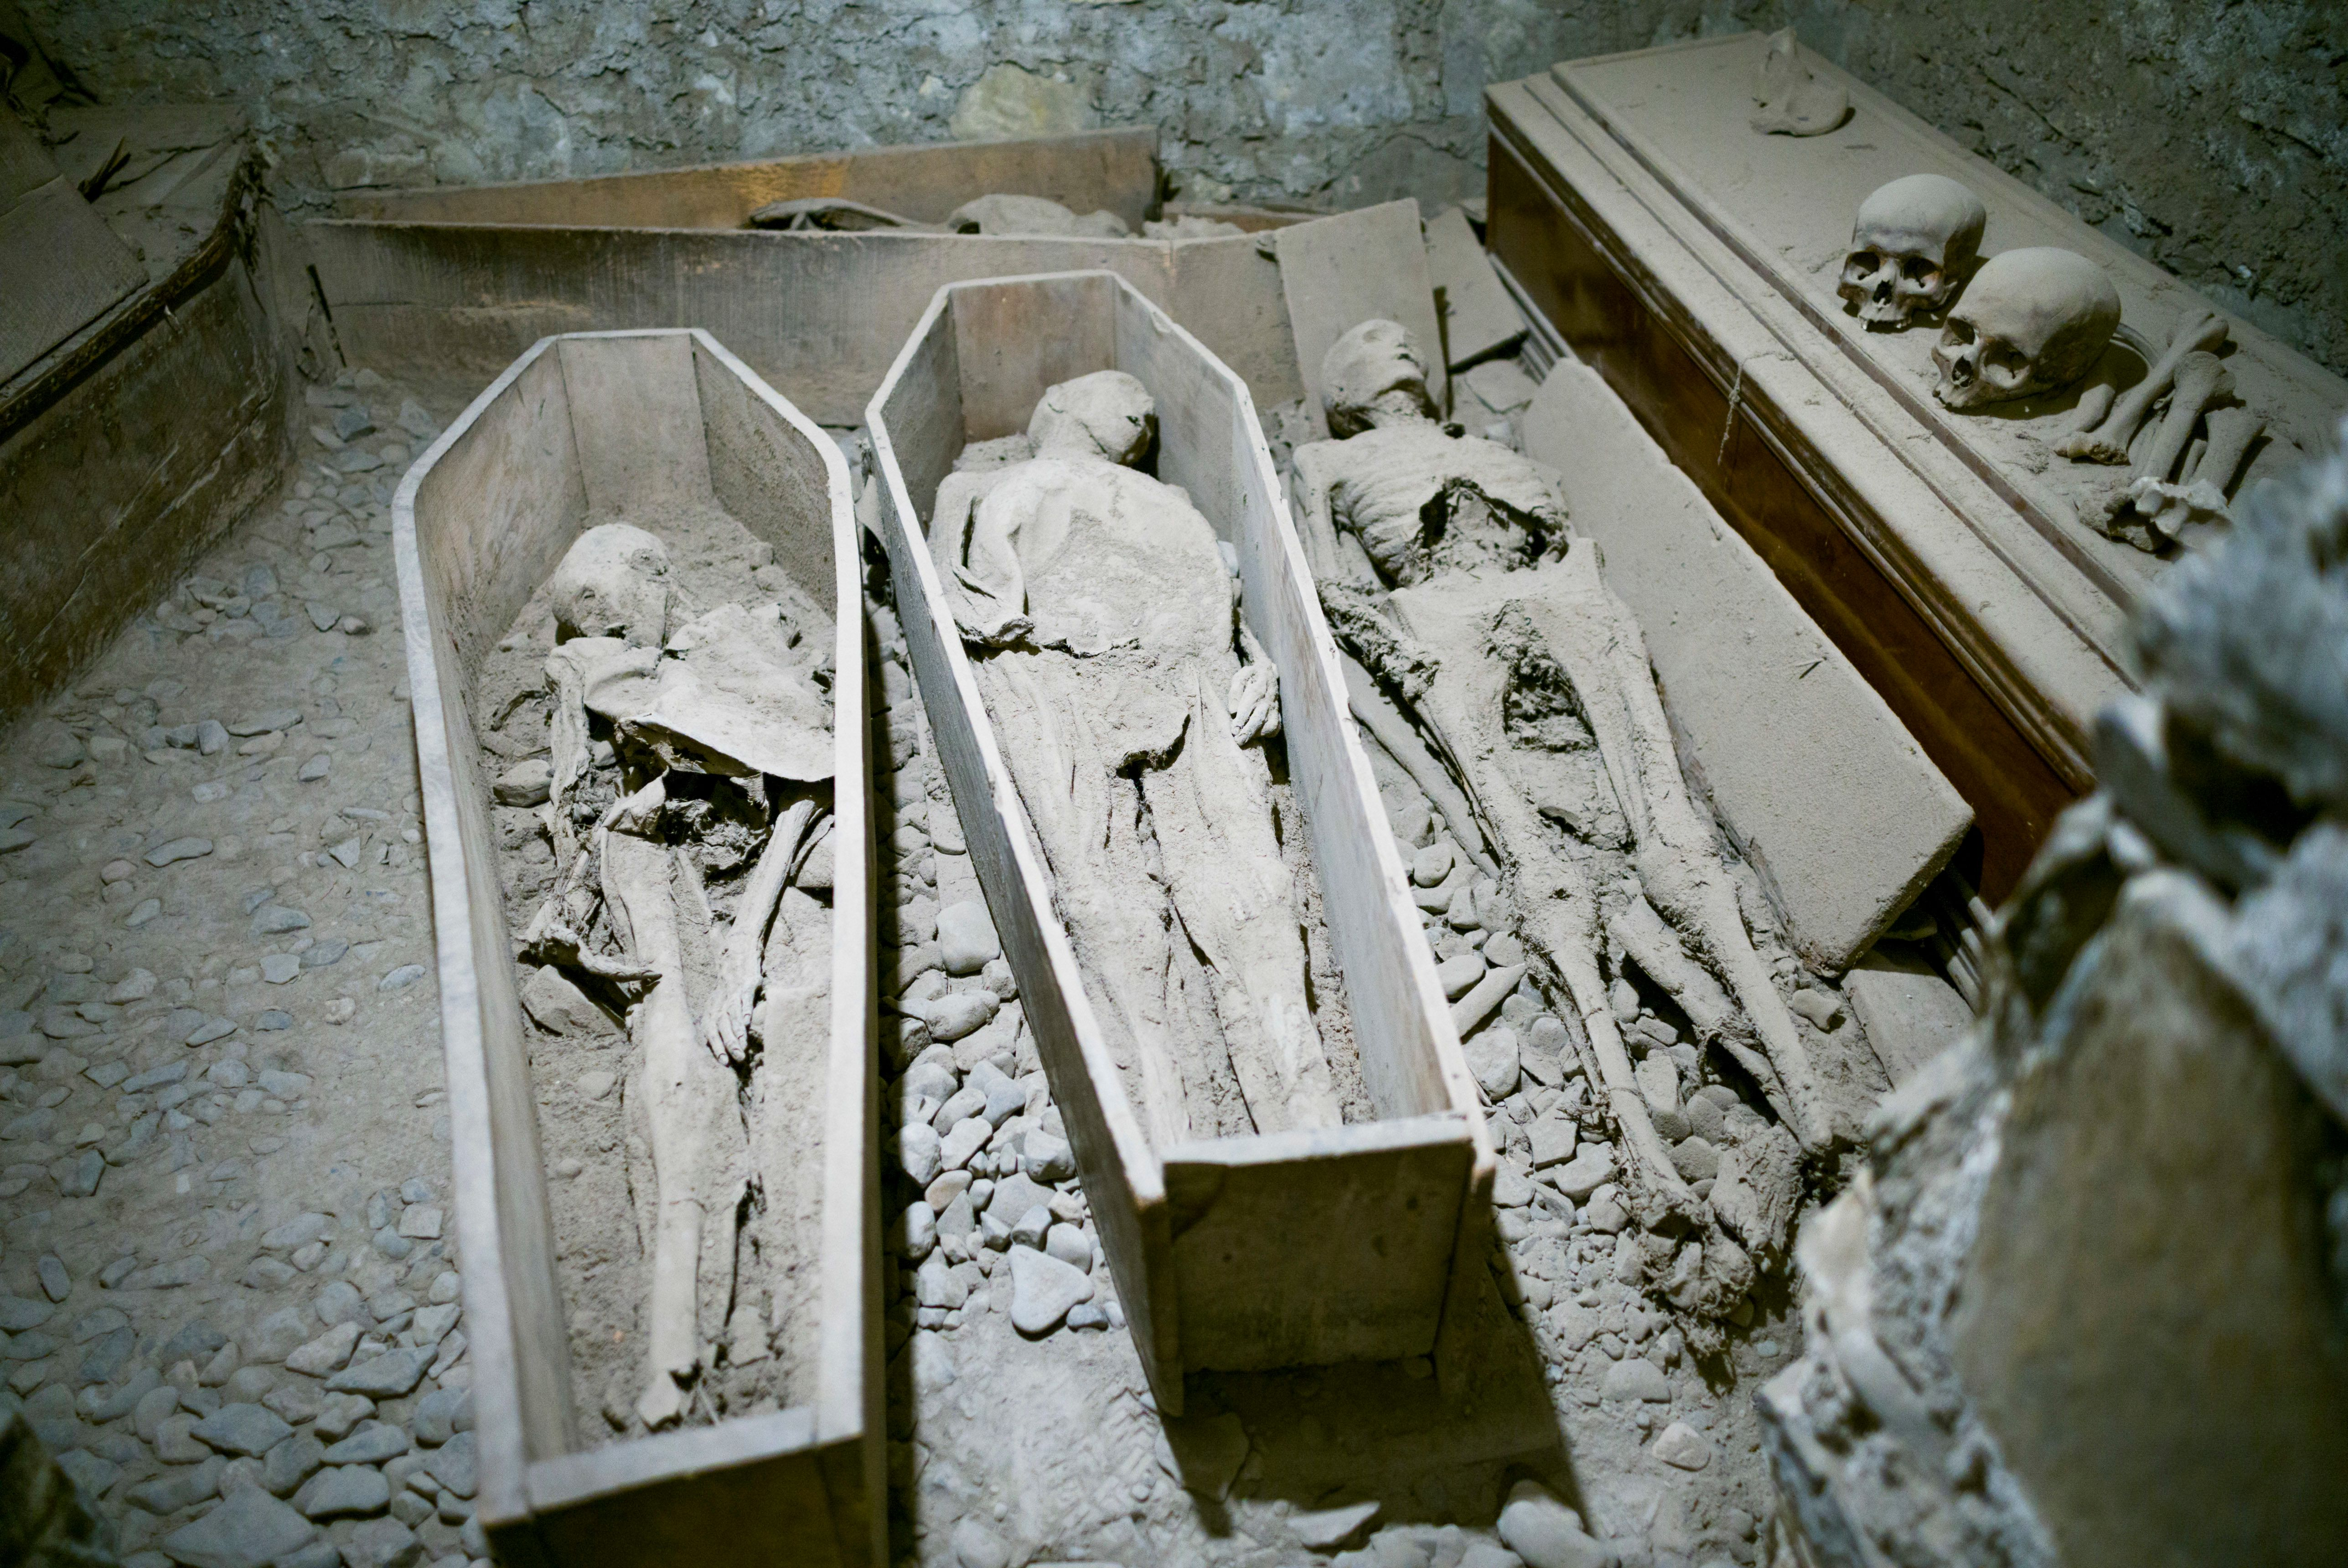 An archival photo from 2006 shows mummies preserved in a crypt at St. Michan's Church in Dublin.